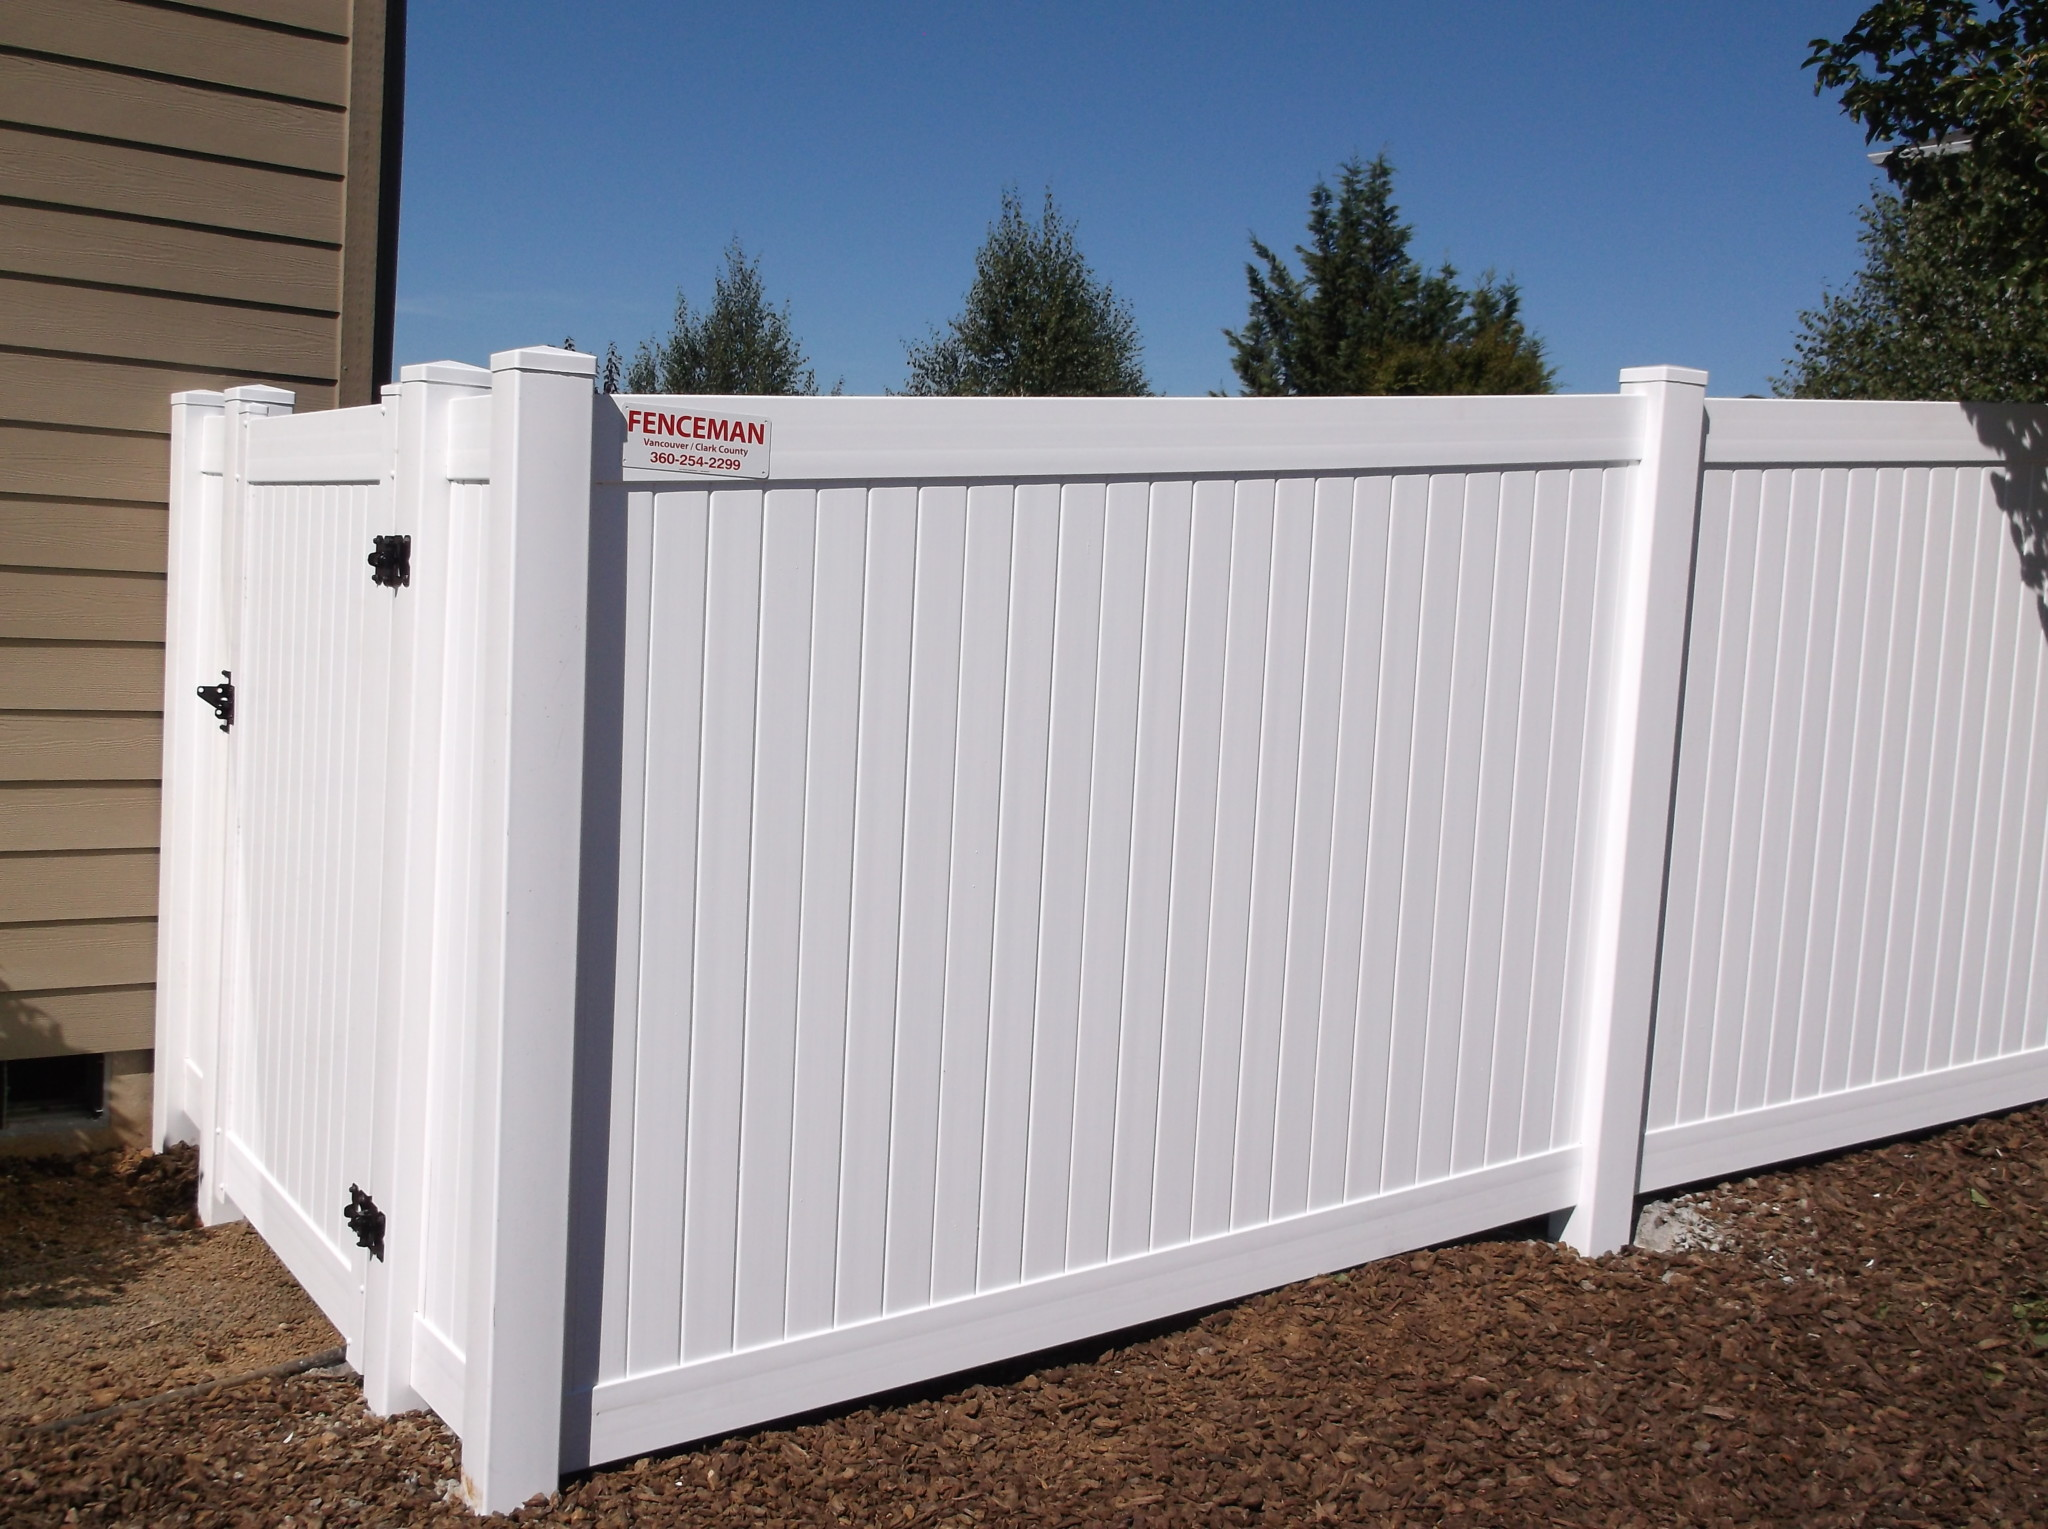 White Vinyl Fence provides both privacy and value. Contact Vancouver Washington's Best Fence Builders. The Fenceman Fence Company installs wood, vinyl, chain link and ornamental iron fences. We also offer materials for the do it yourselfer.